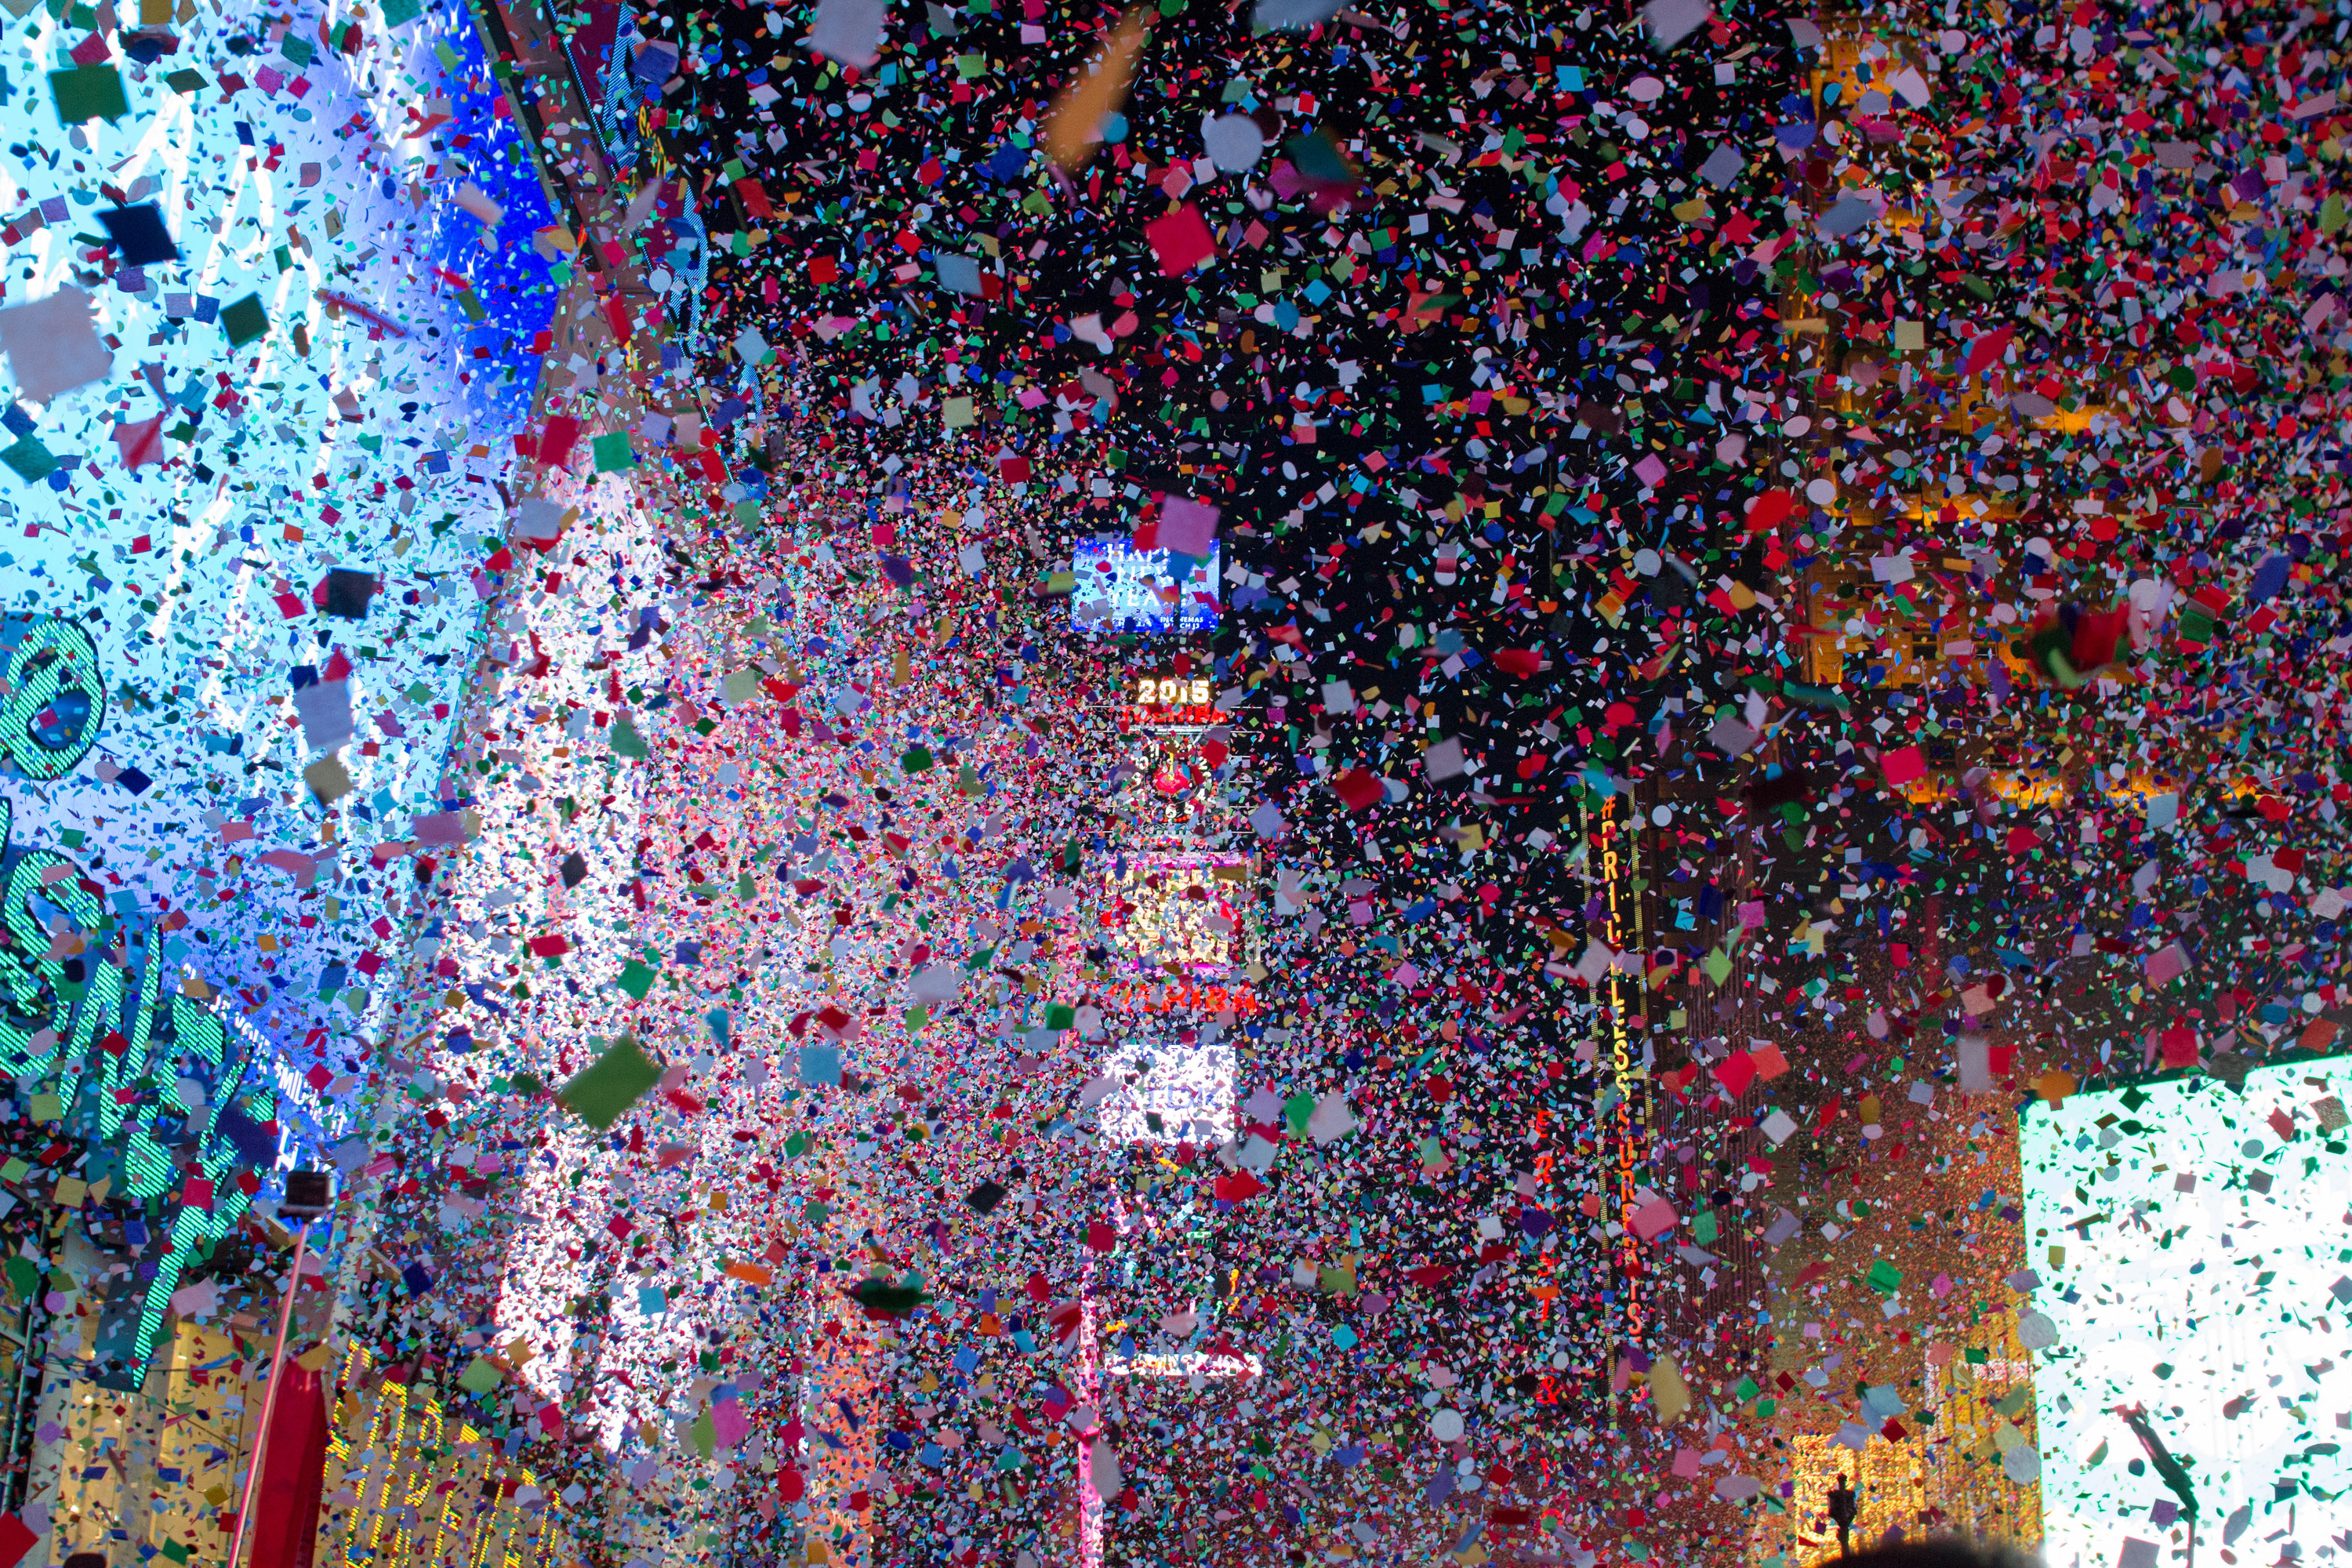 Have your wish rain down with the confetti in Times Square on New Year's Eve